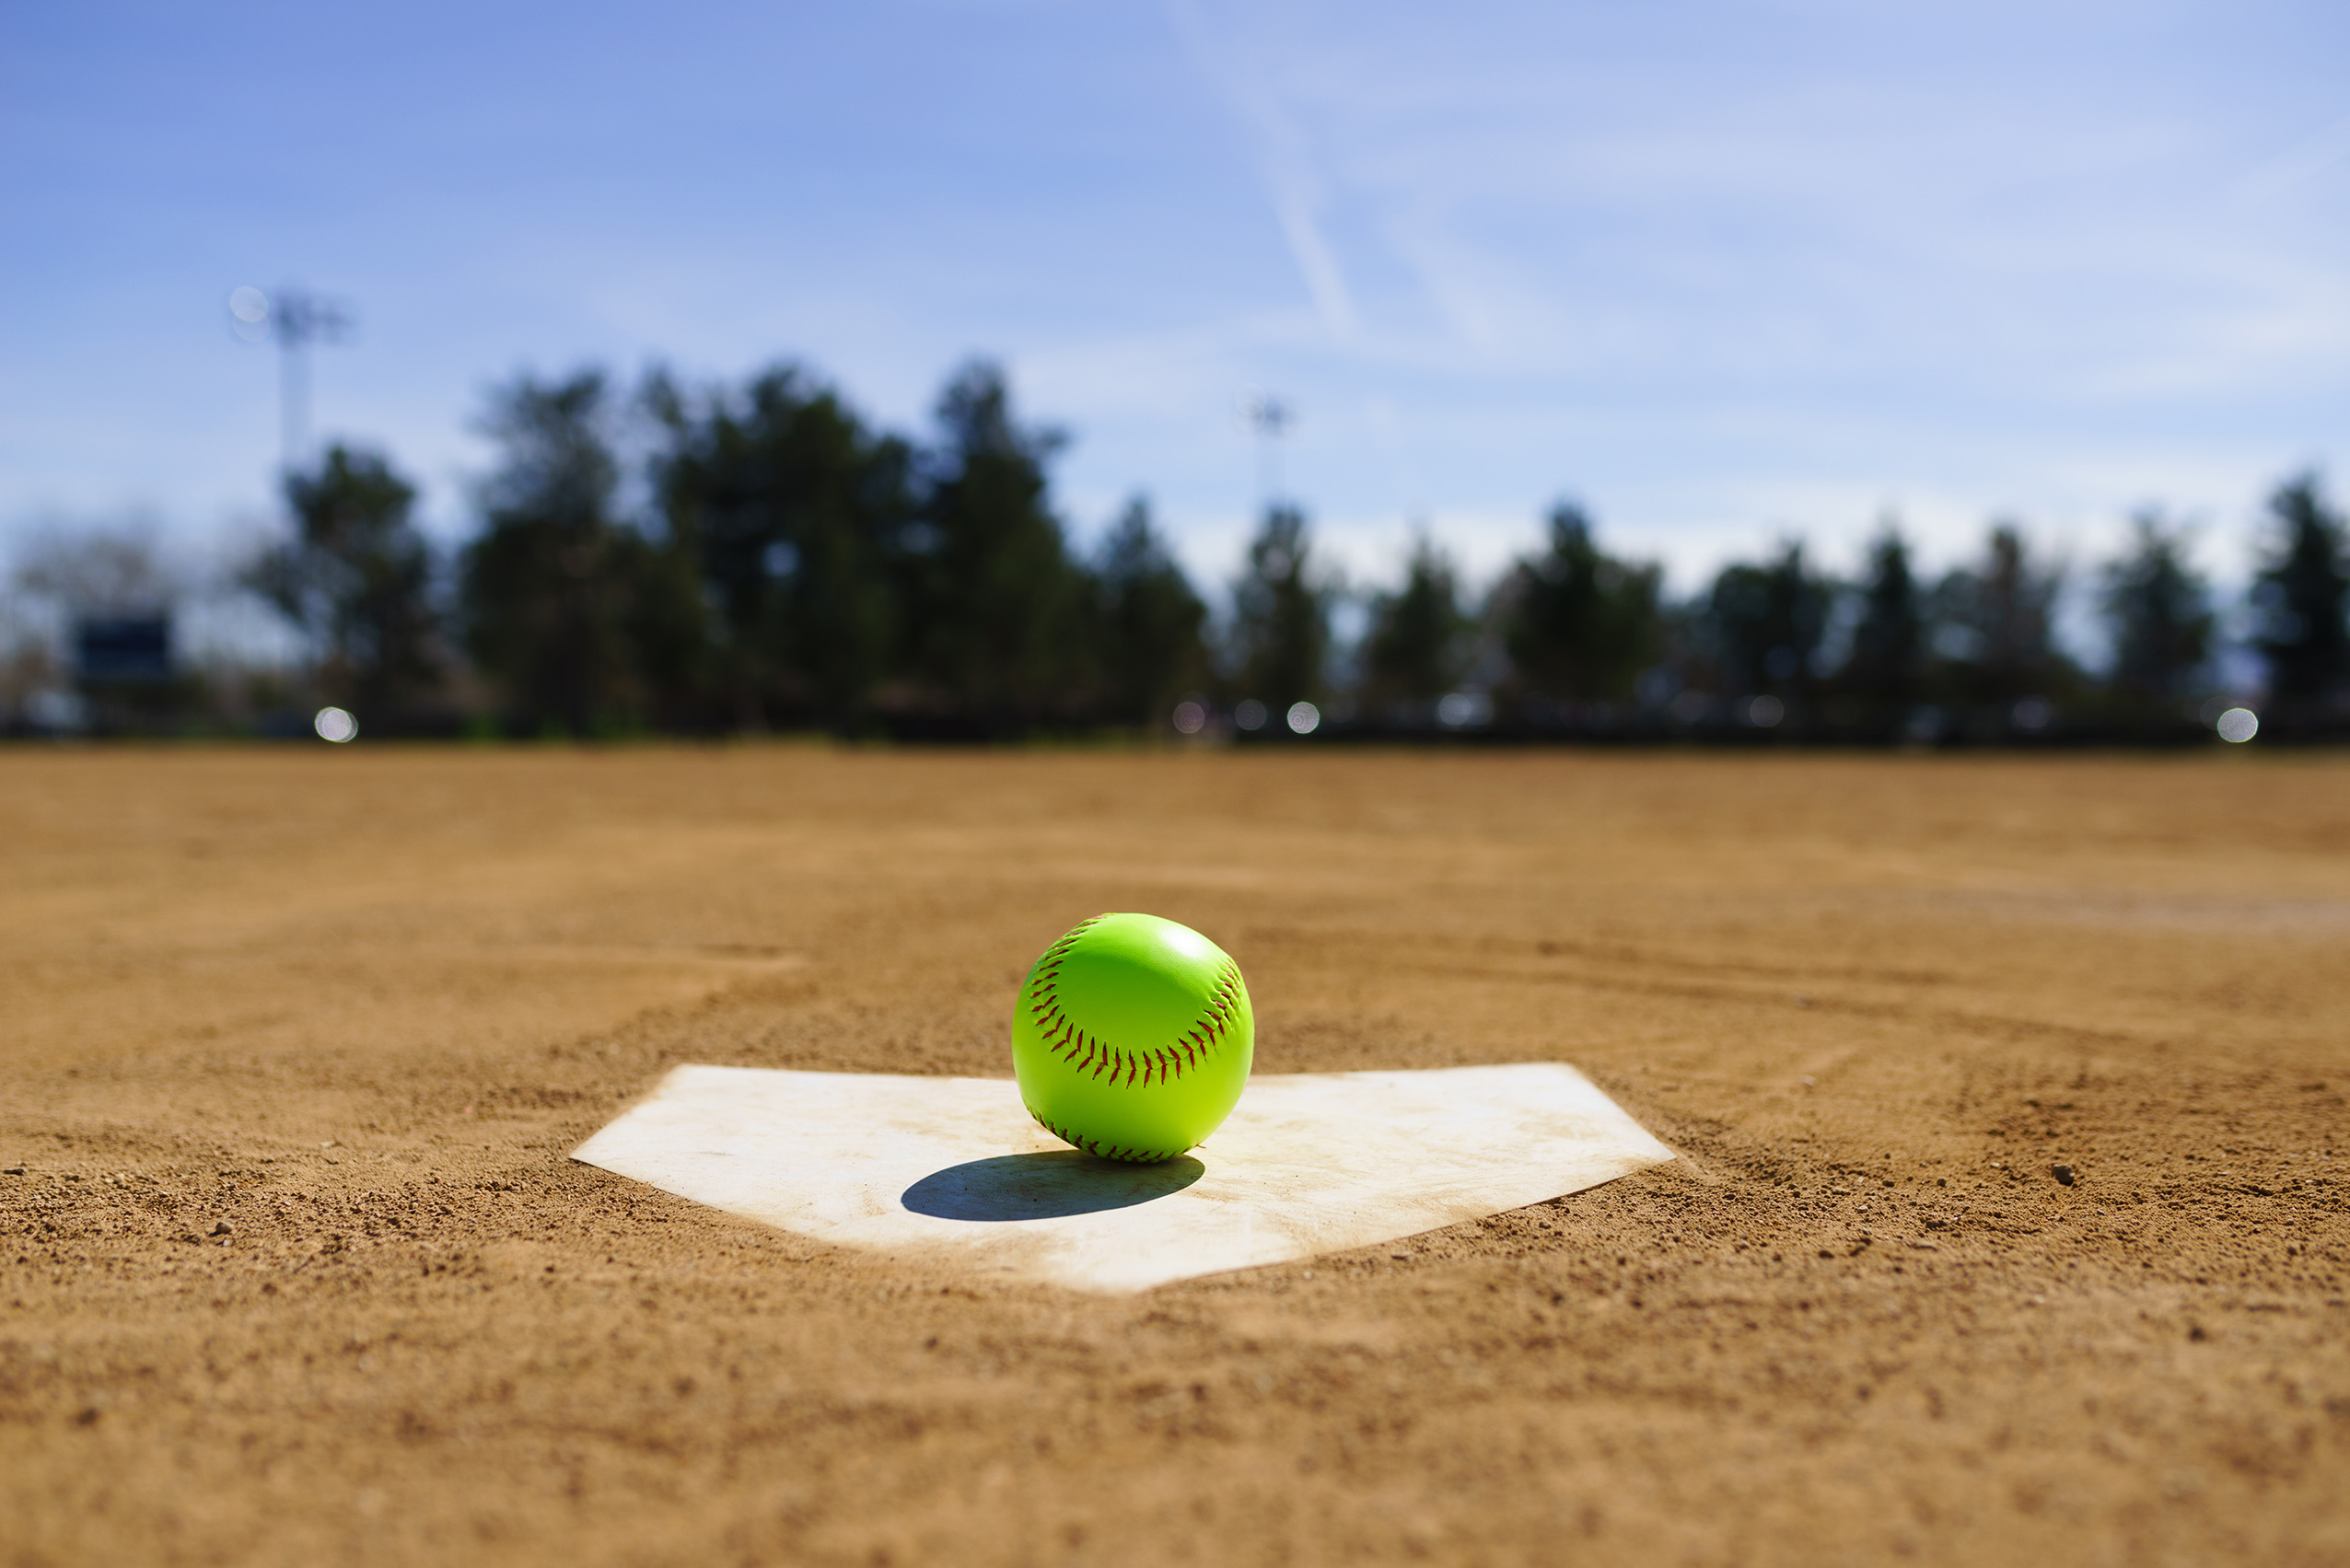 Softball rests on home plate in a field